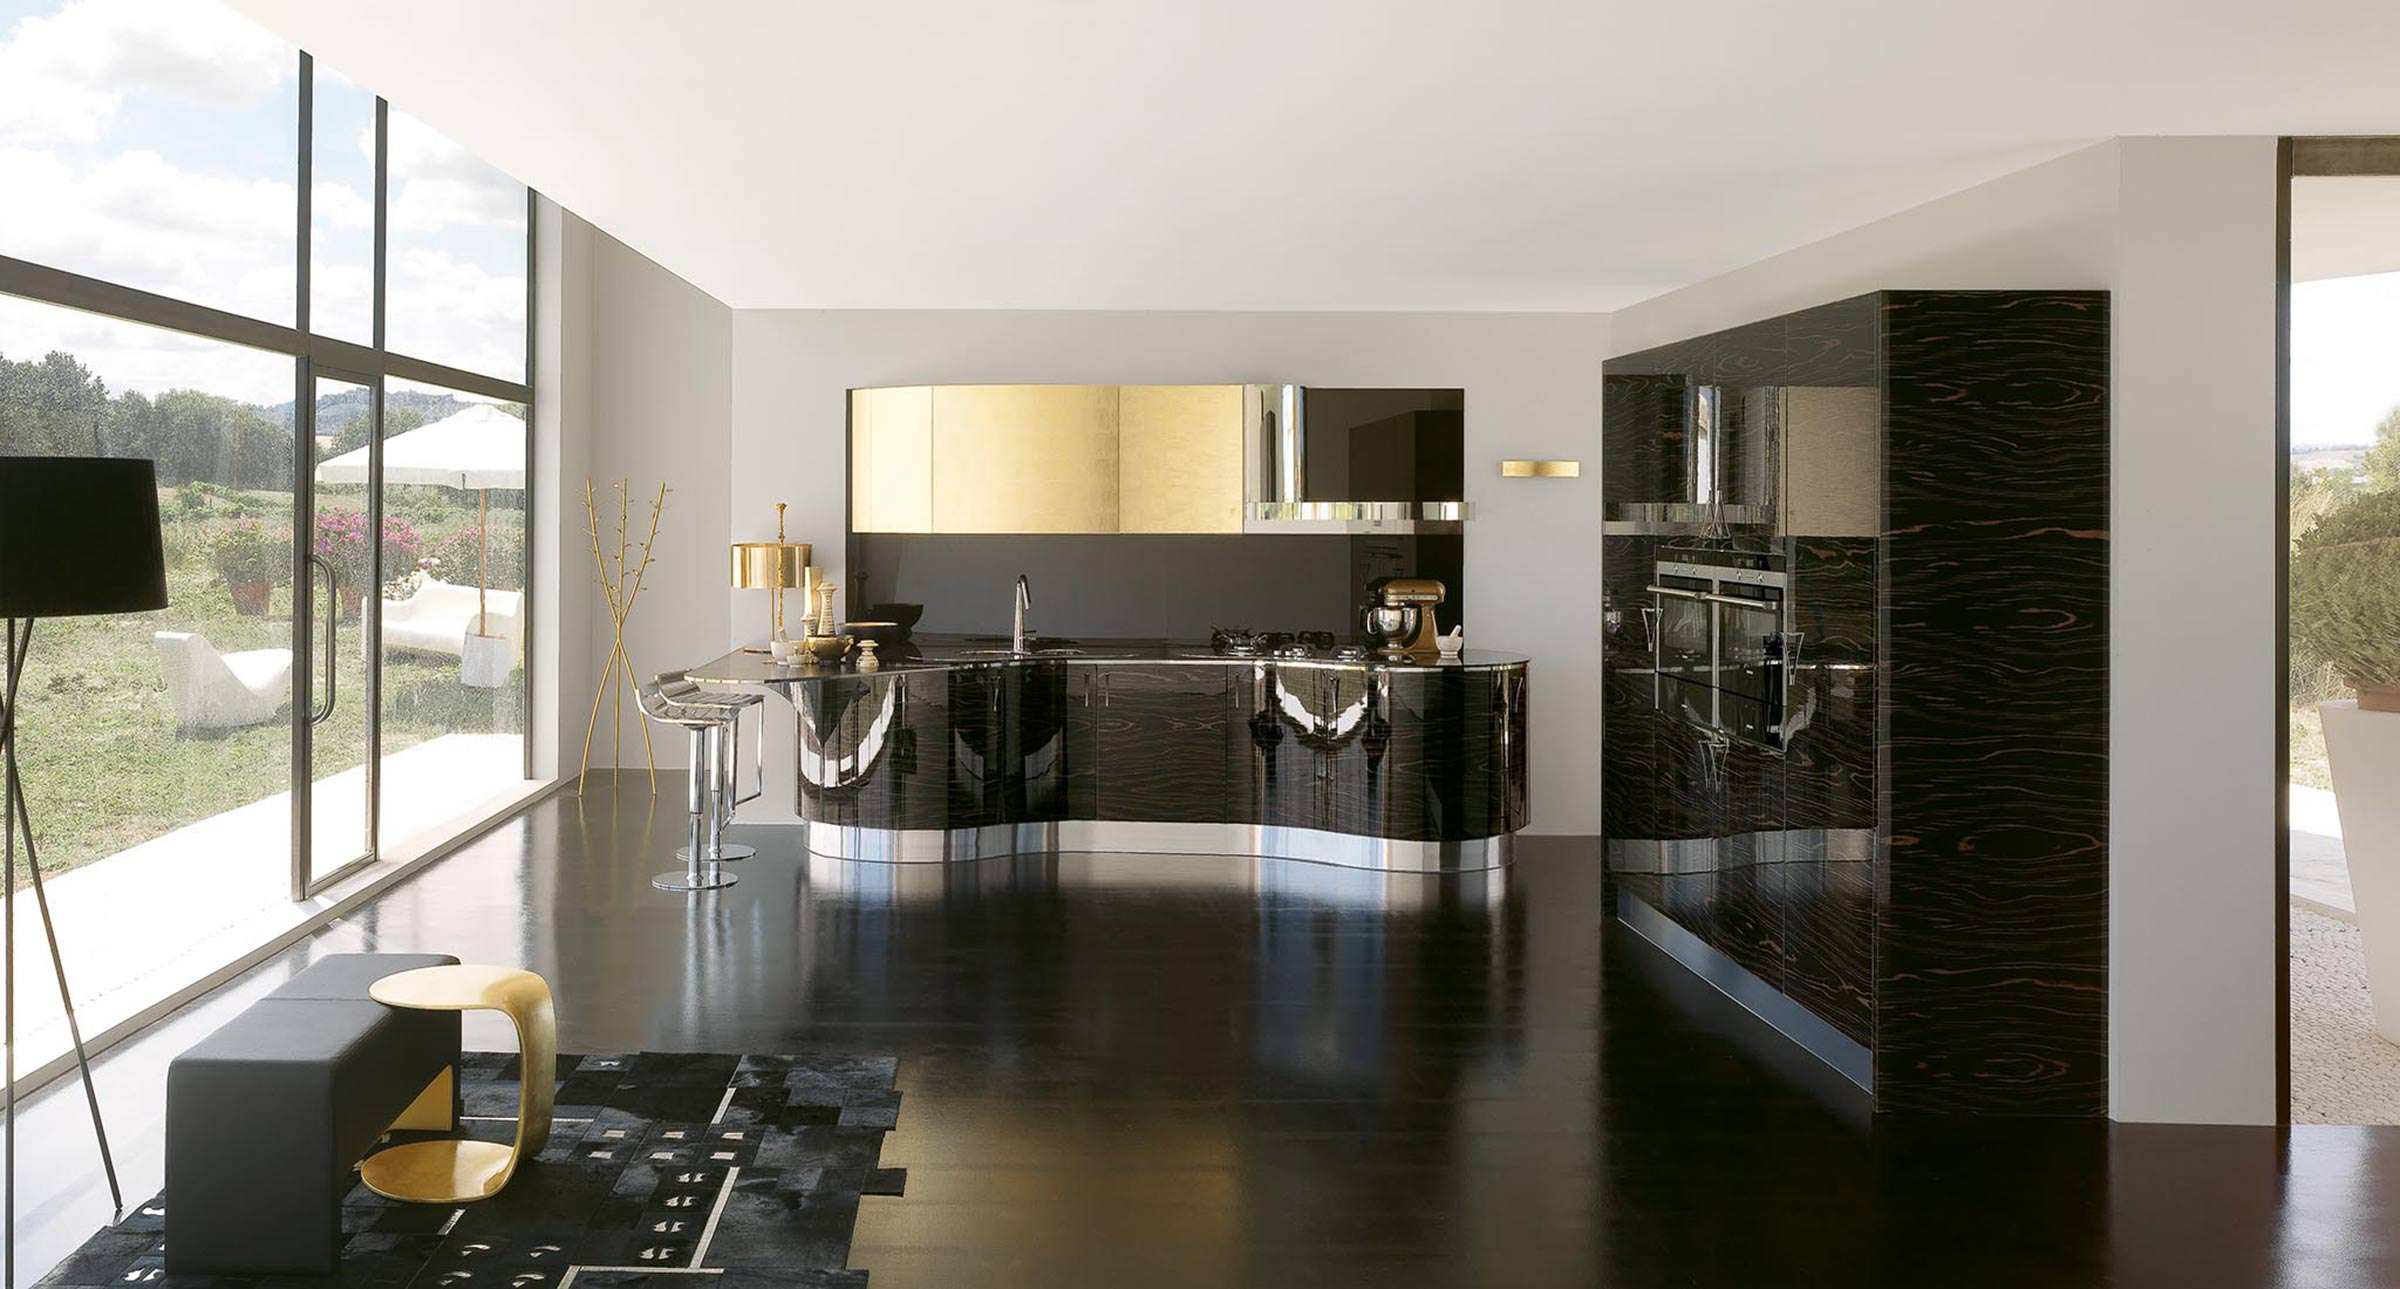 cuisine haut de gamme lyon id es d coration id es d coration. Black Bedroom Furniture Sets. Home Design Ideas